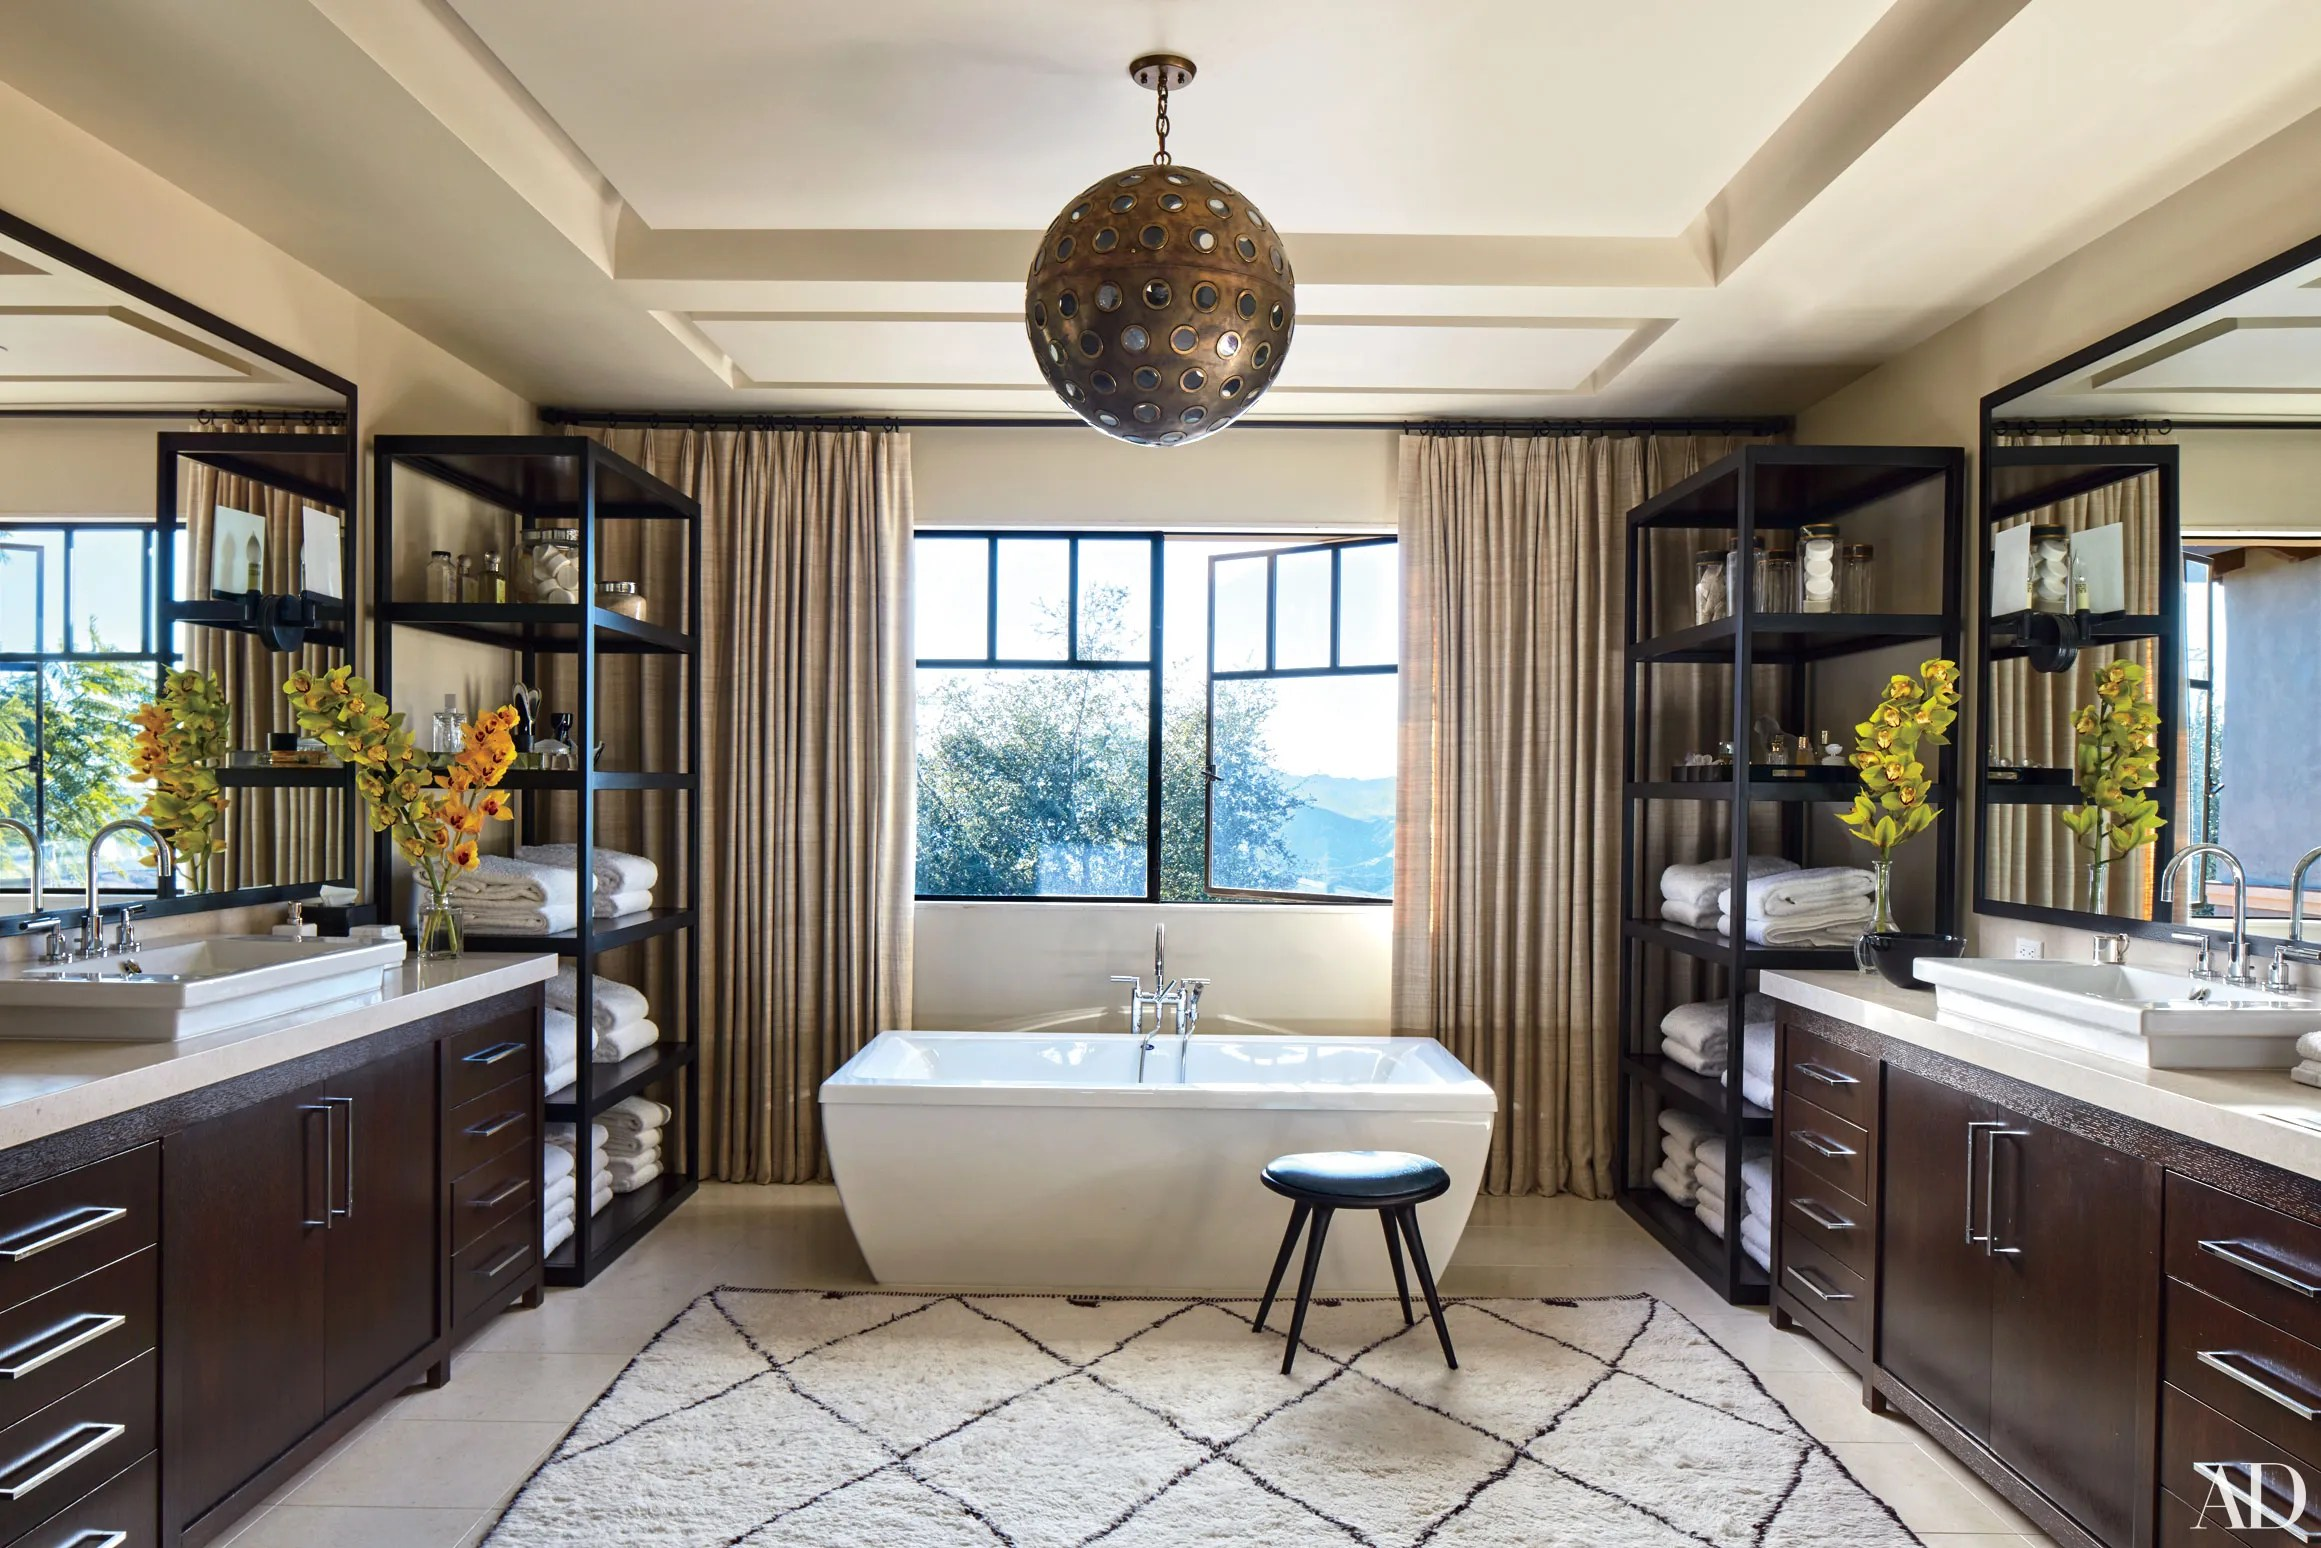 22 Luxury Bathrooms in Celebrity Homes Photos   Architectural Digest